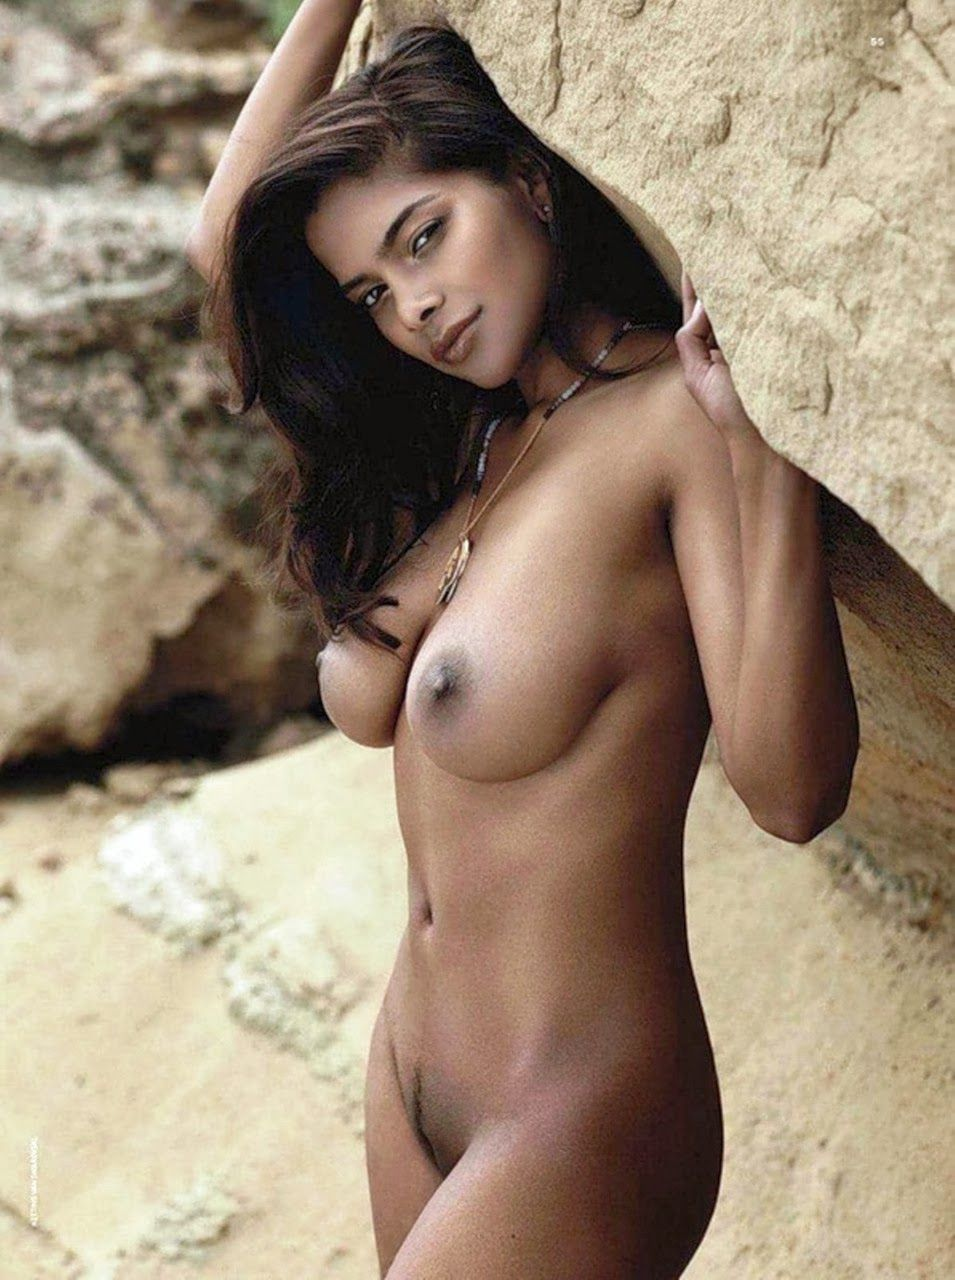 hoes-indian-naked-photo-naked-athletic